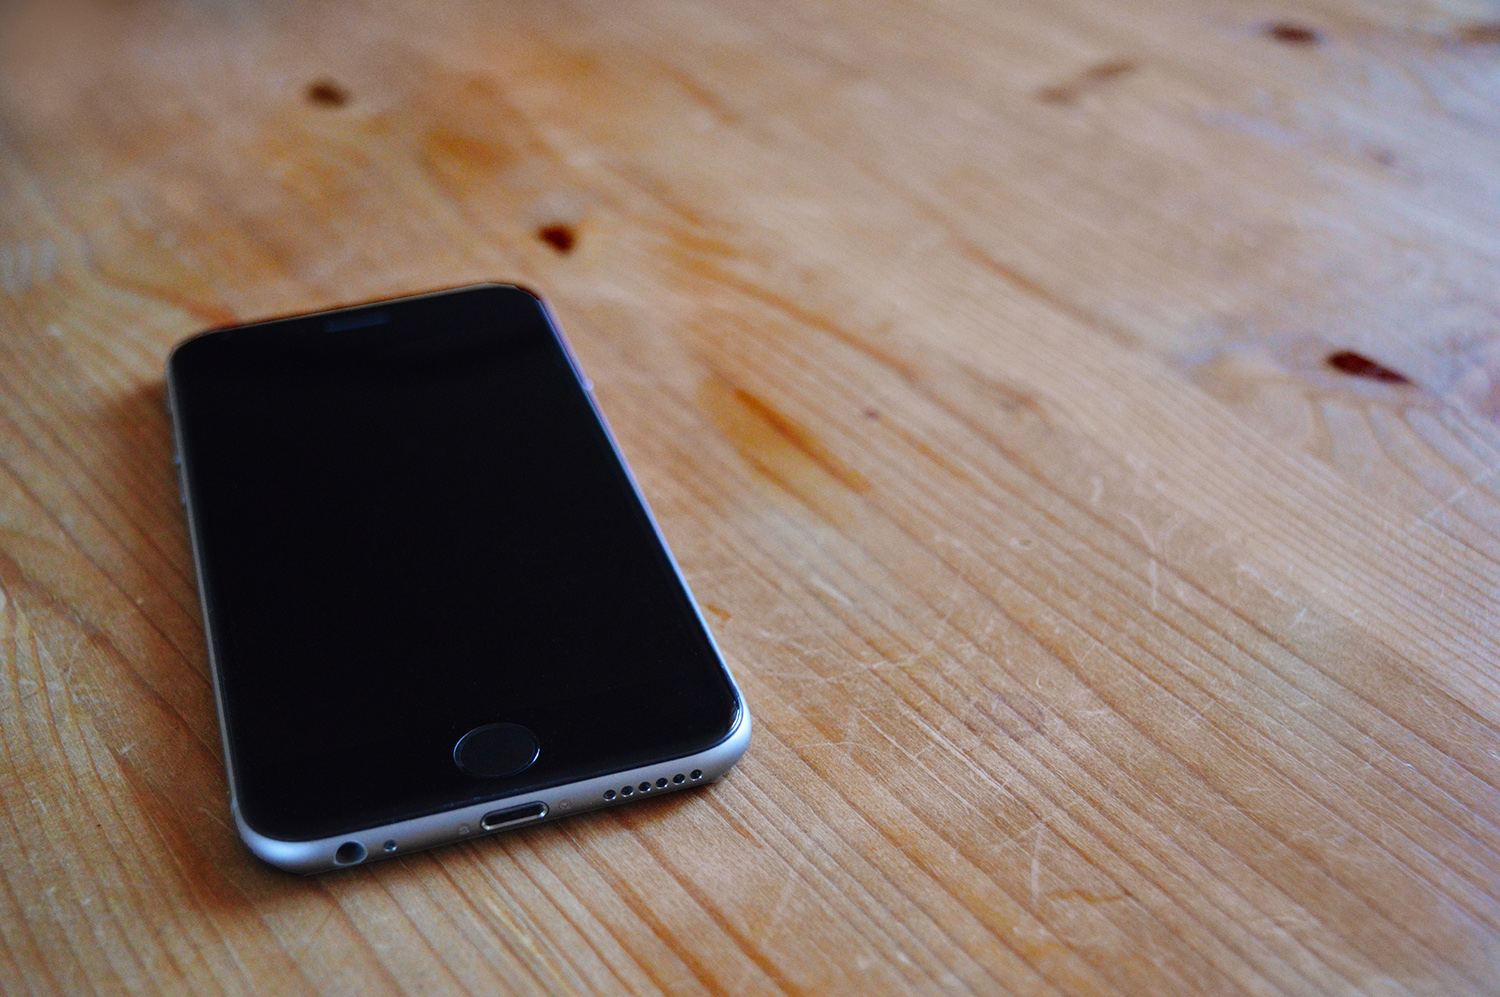 An iPhone on a wooden table